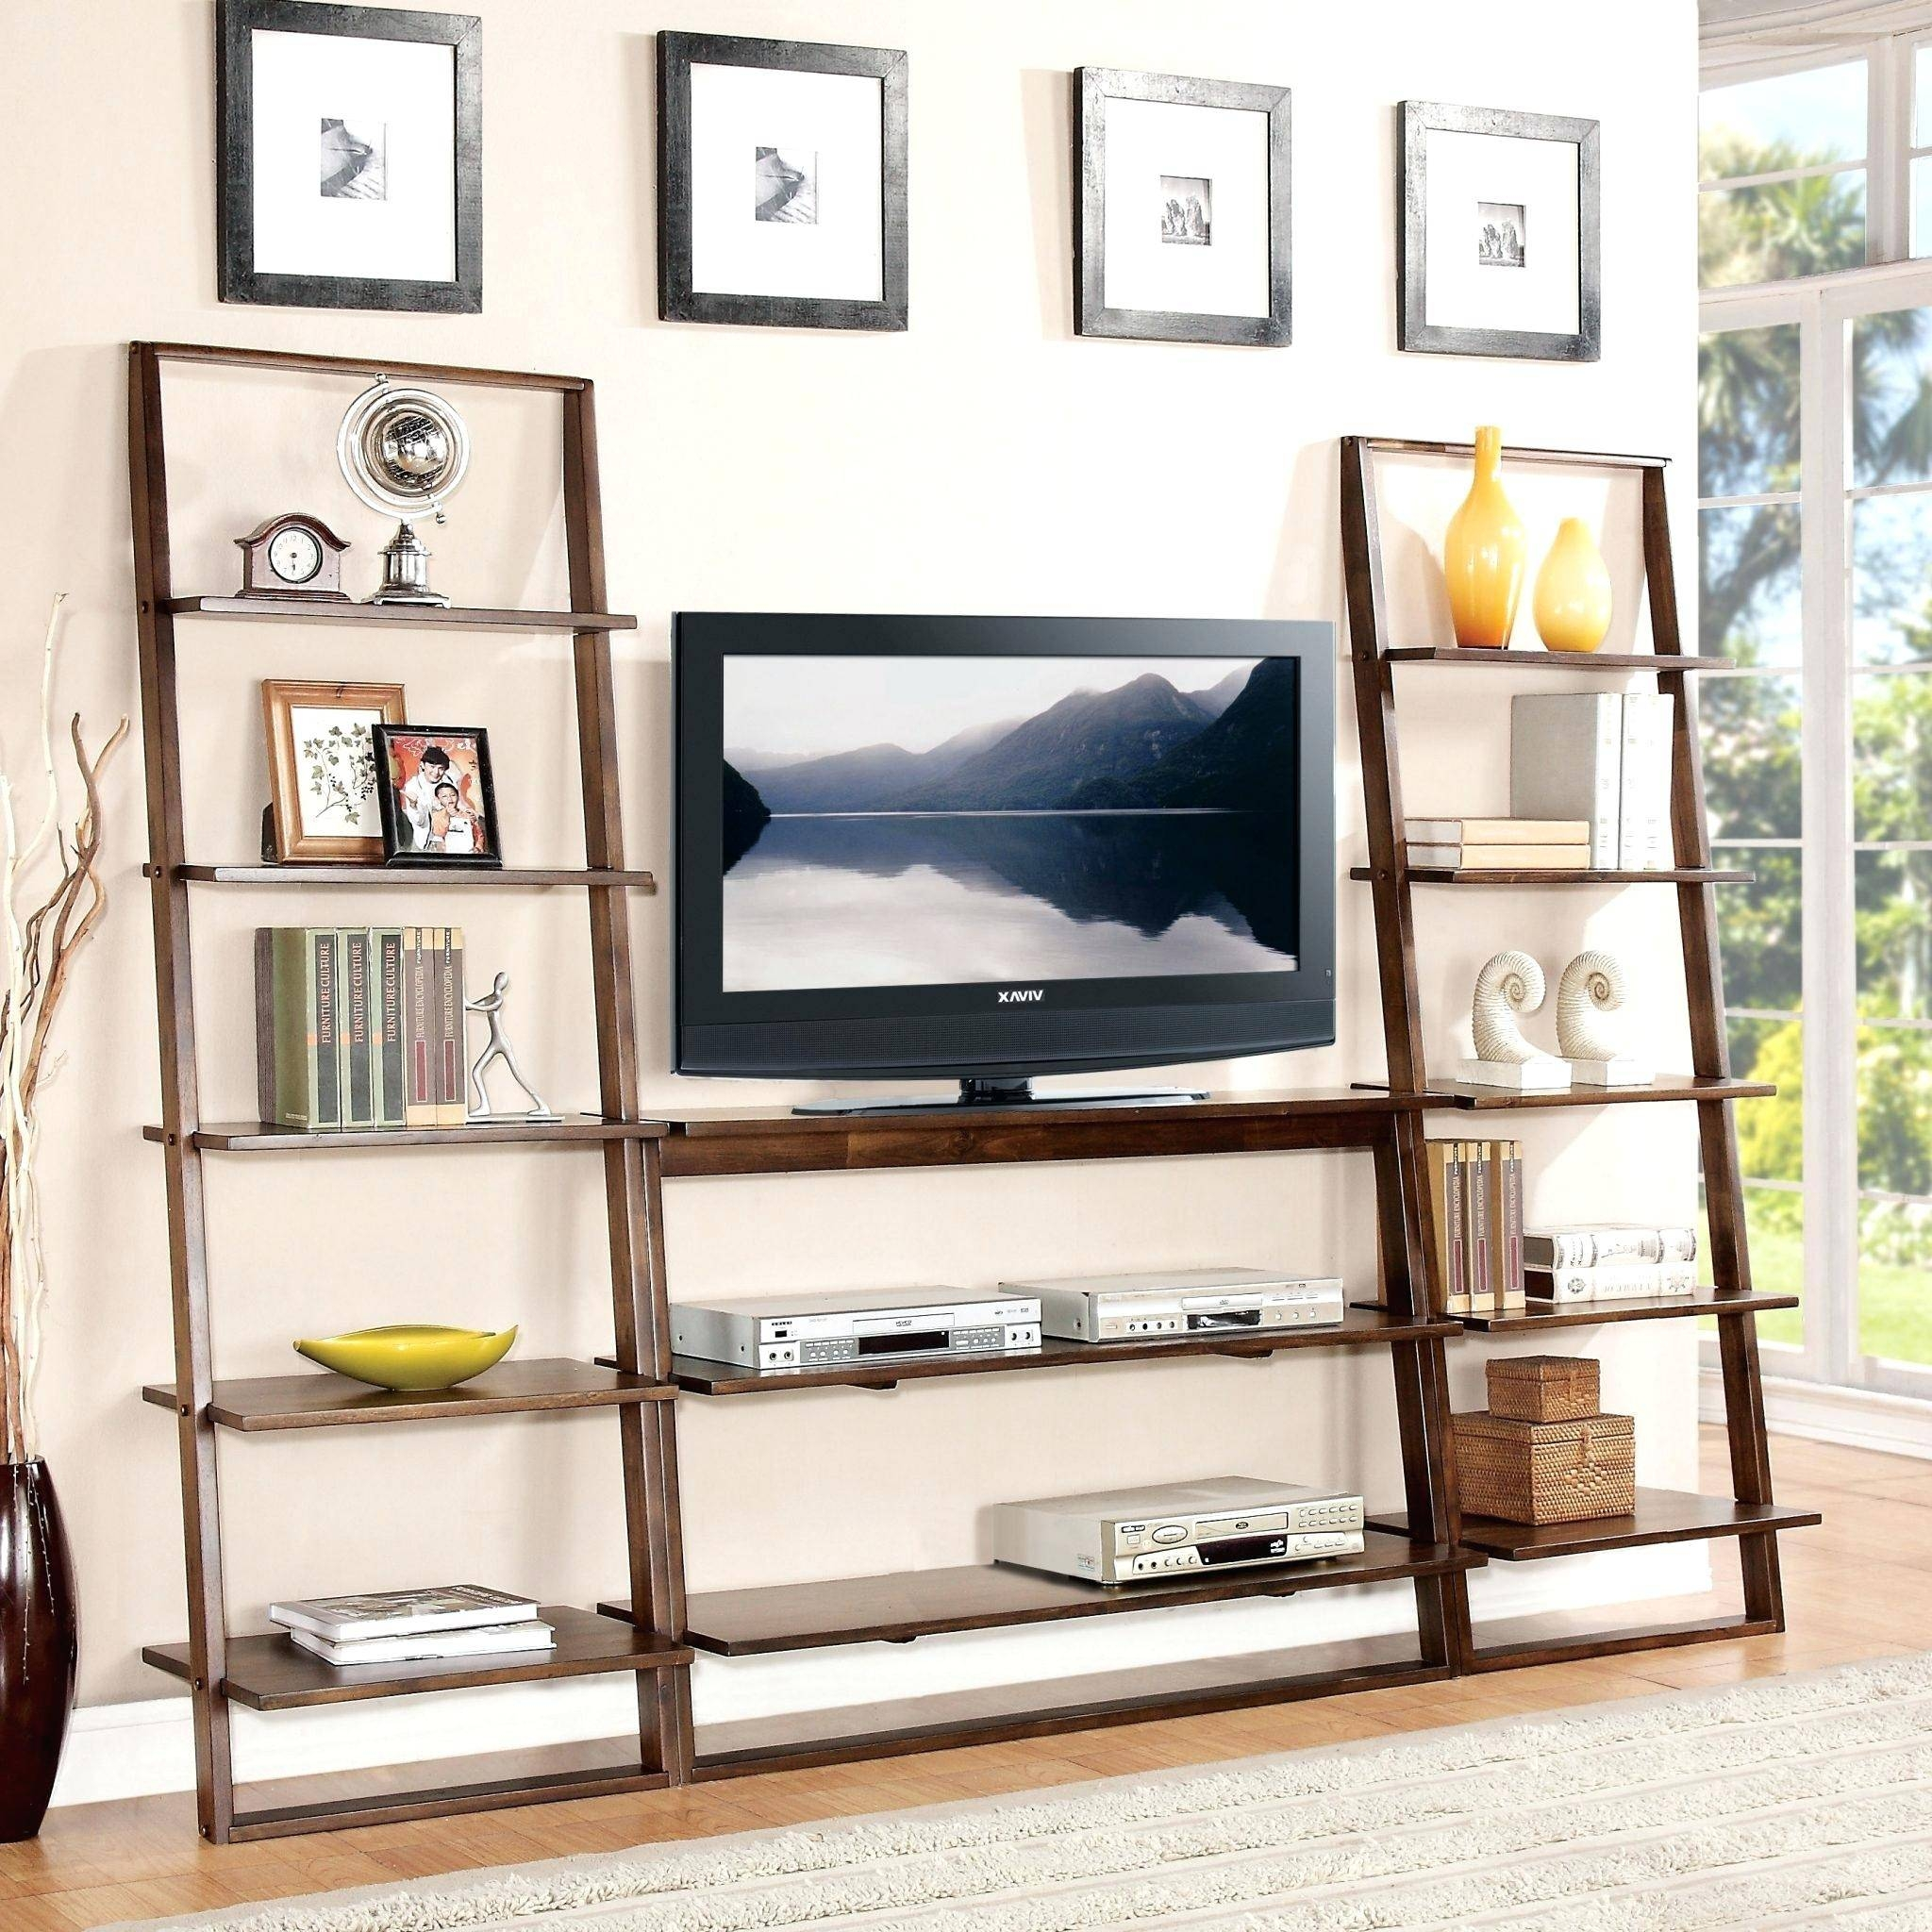 Tv Stand : 96 Flat Screen Tv Stand With Bookshelves Full Size Tv Pertaining To Bookshelf Tv Stands Combo (View 7 of 15)